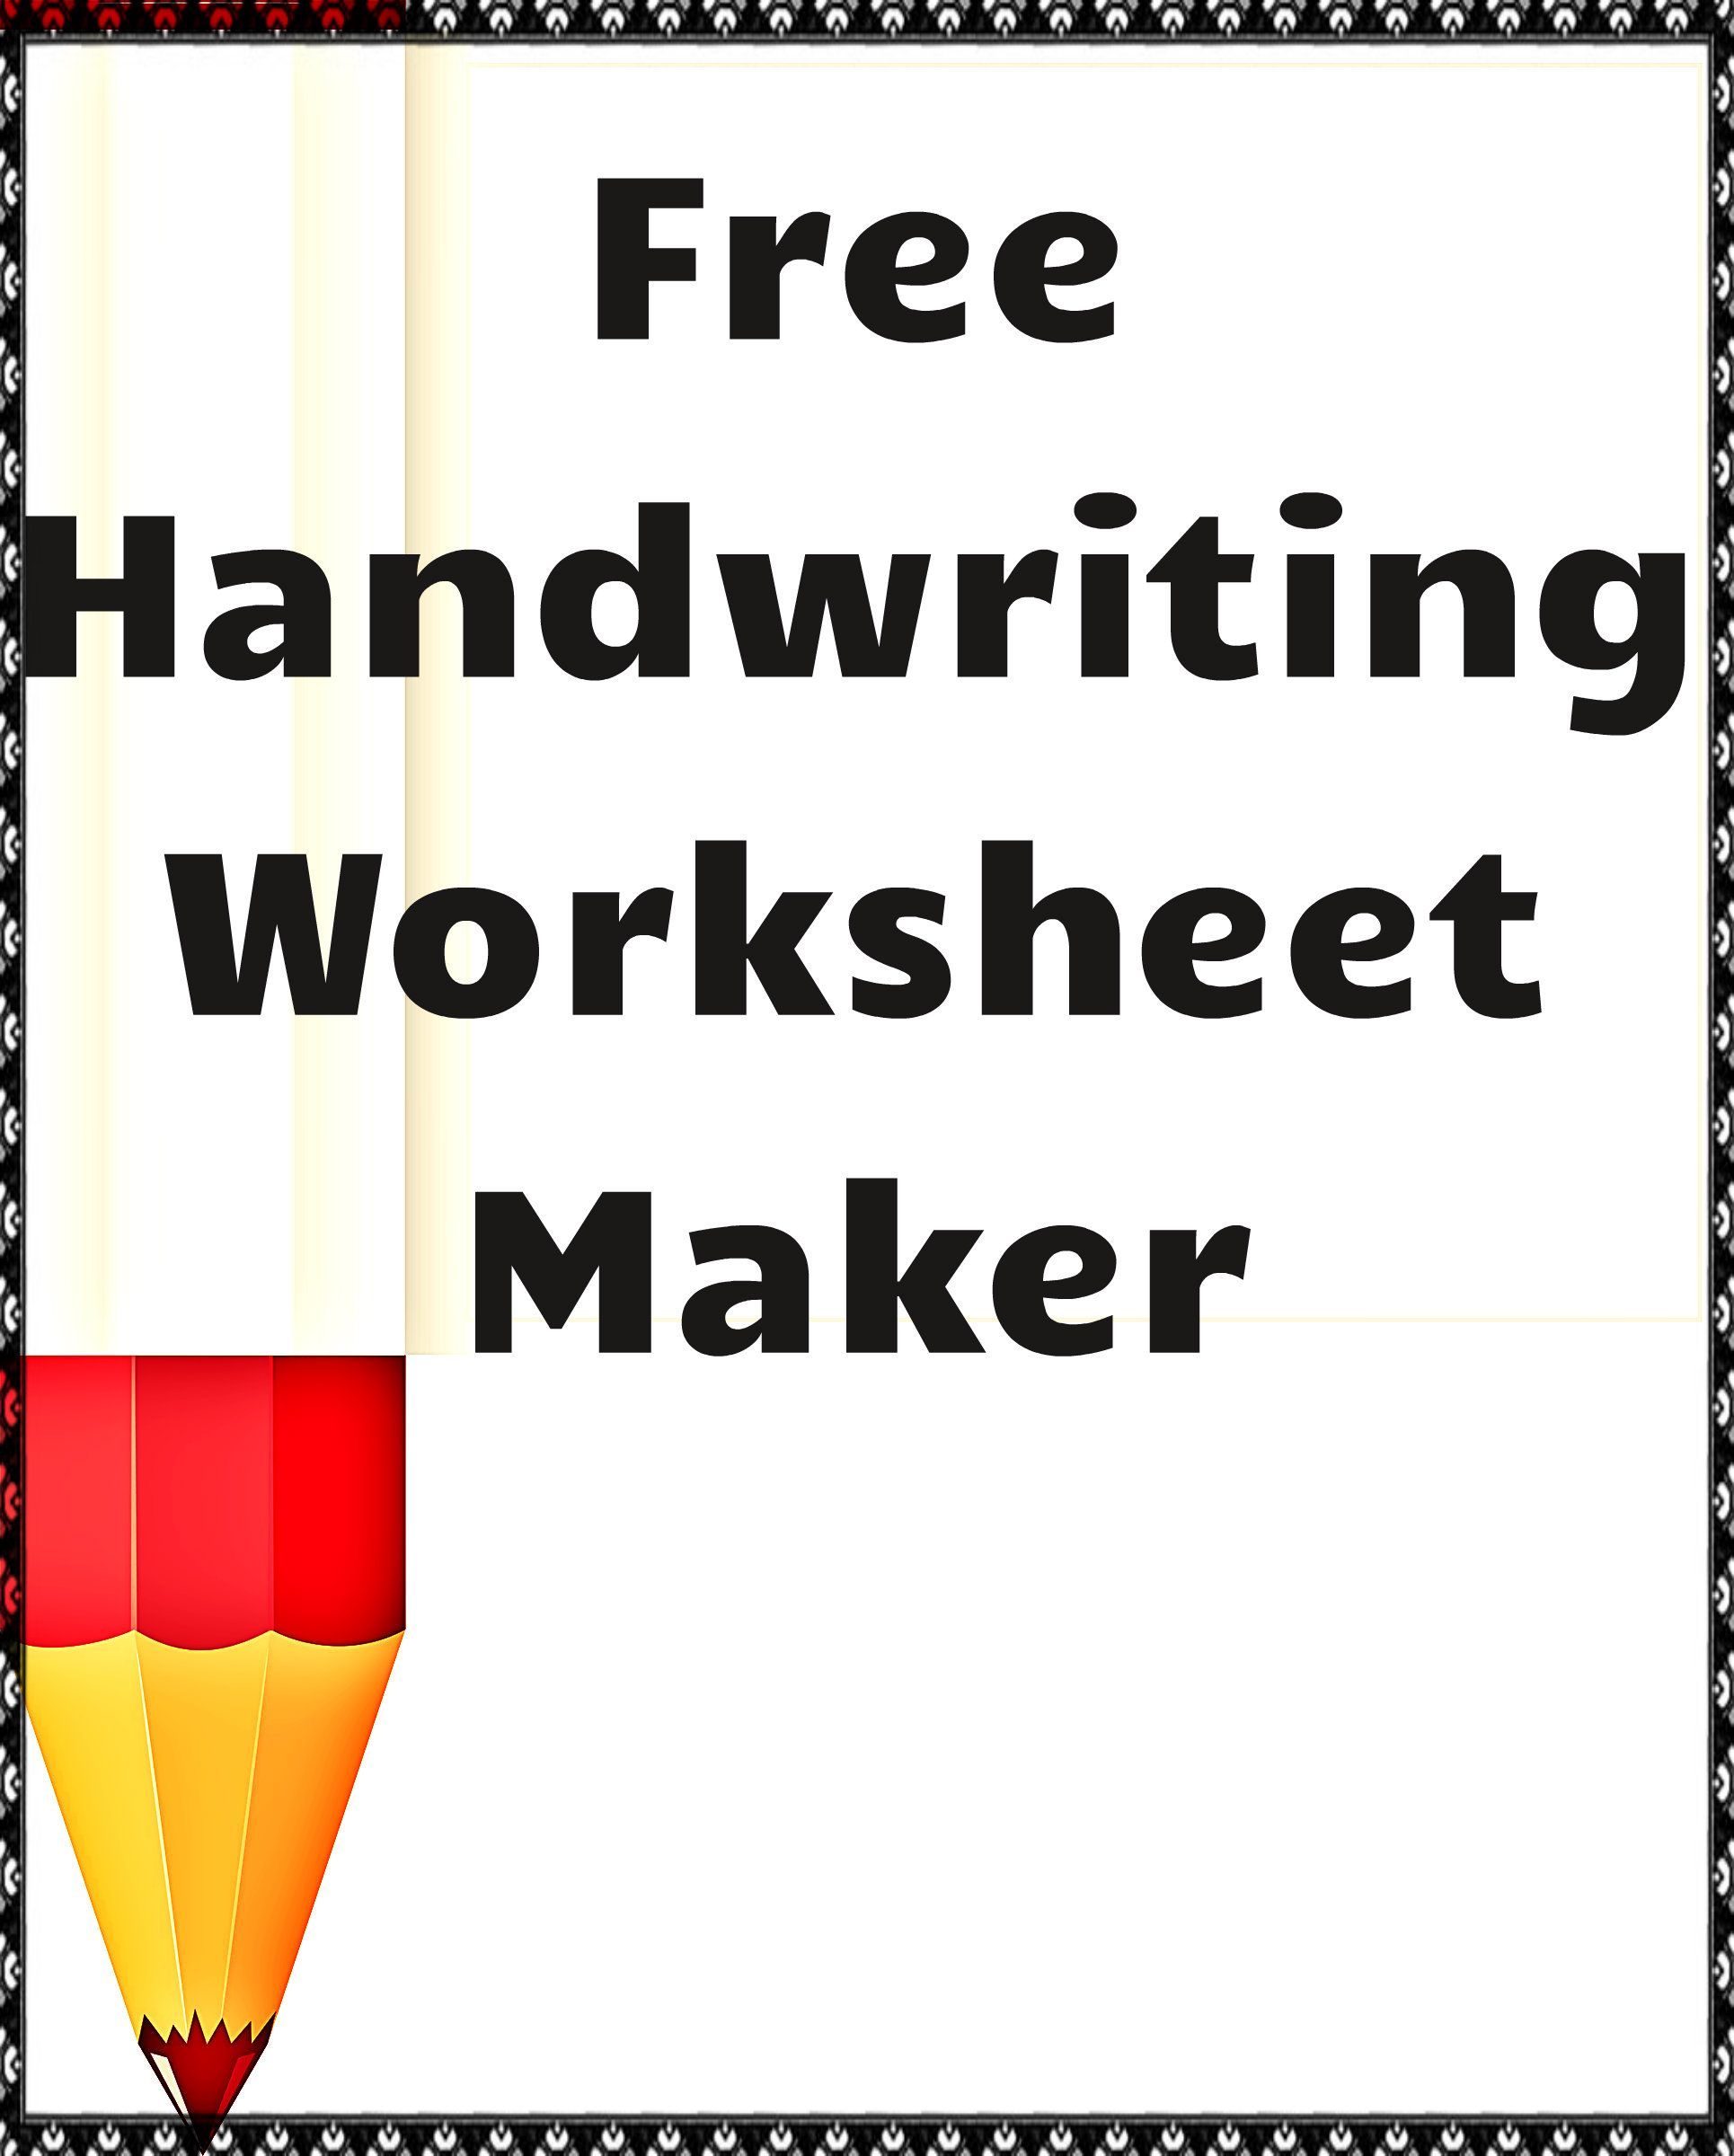 Handwriting Worksheet Maker | Handwriting Worksheet Maker in Name Tracing Worksheet Creator